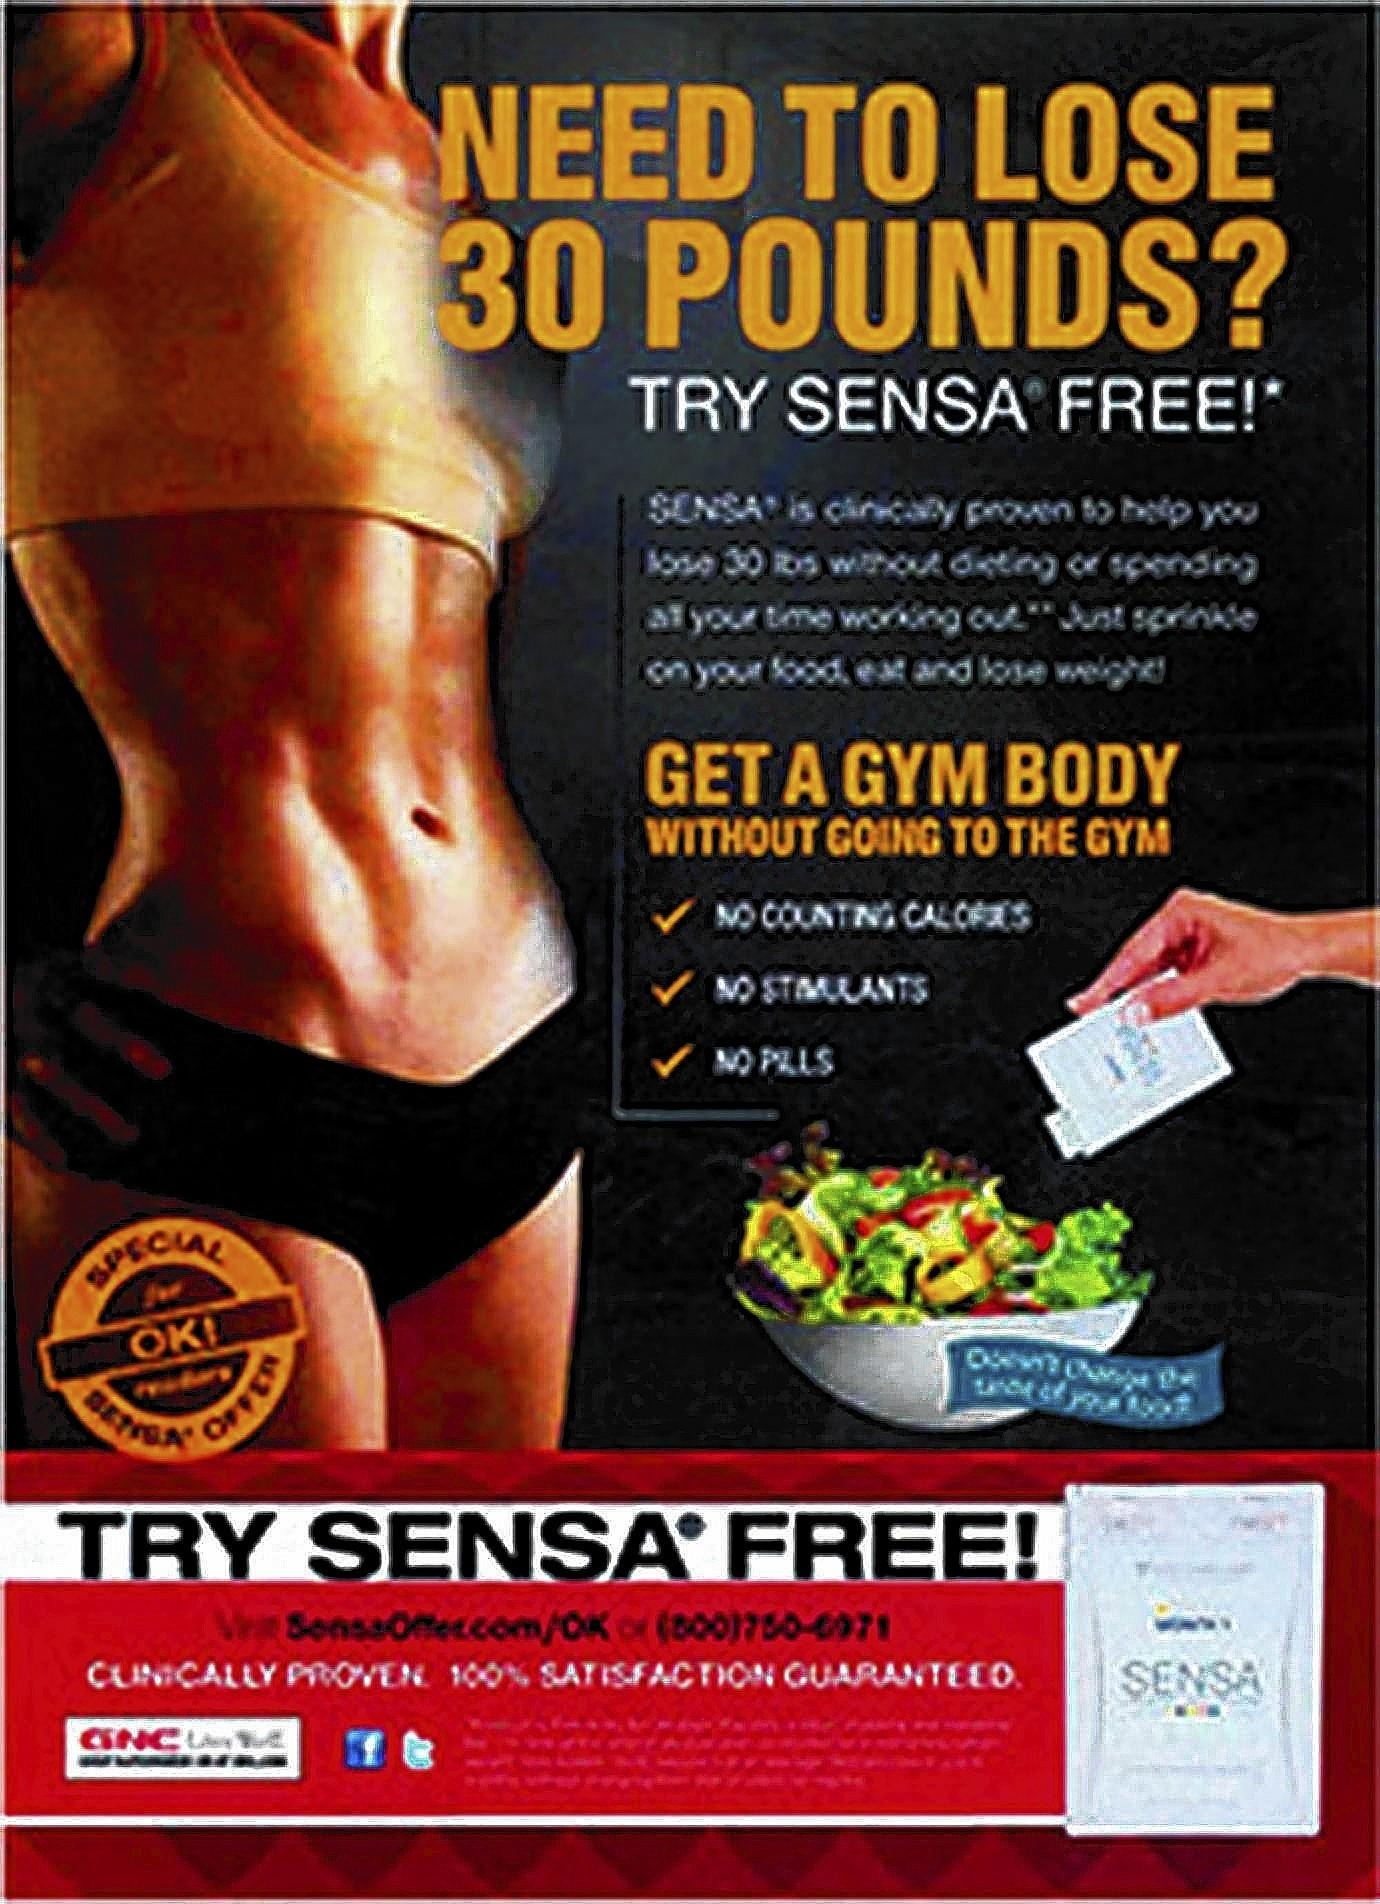 Sensa will refund $26.5 million to customers following a settlement with the Federal Trade Commission, which alleged the company made unsubstantiated claims about its weight-loss products.